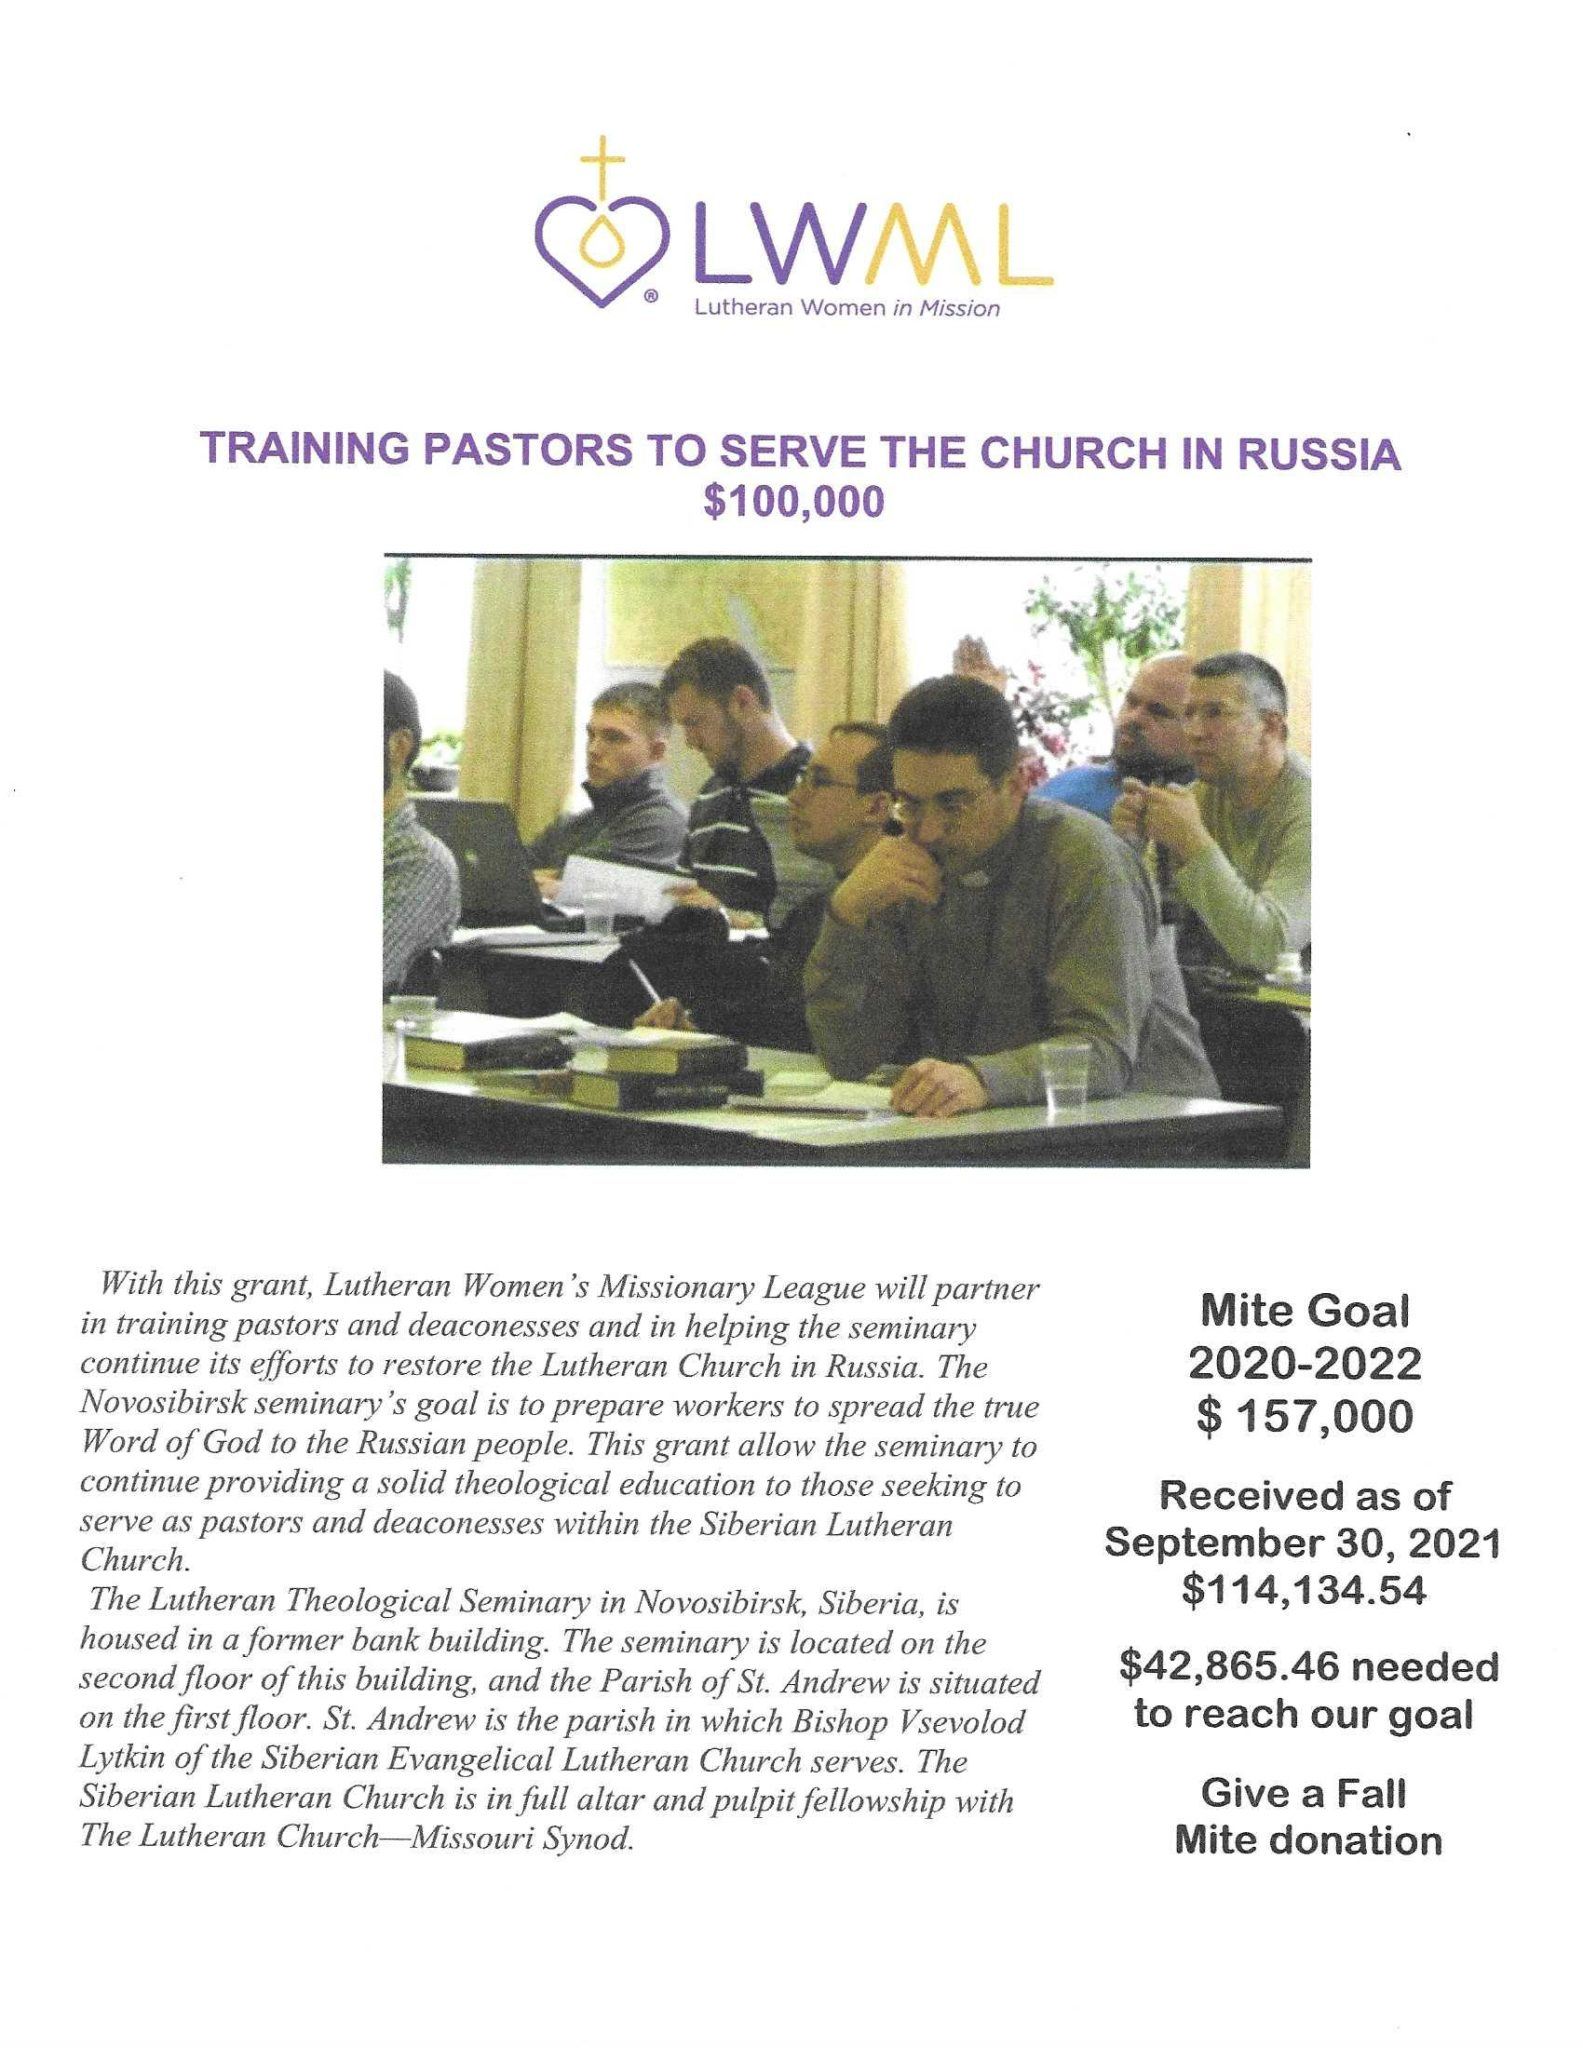 Mission Grant poster for LWML NID for October 2021.